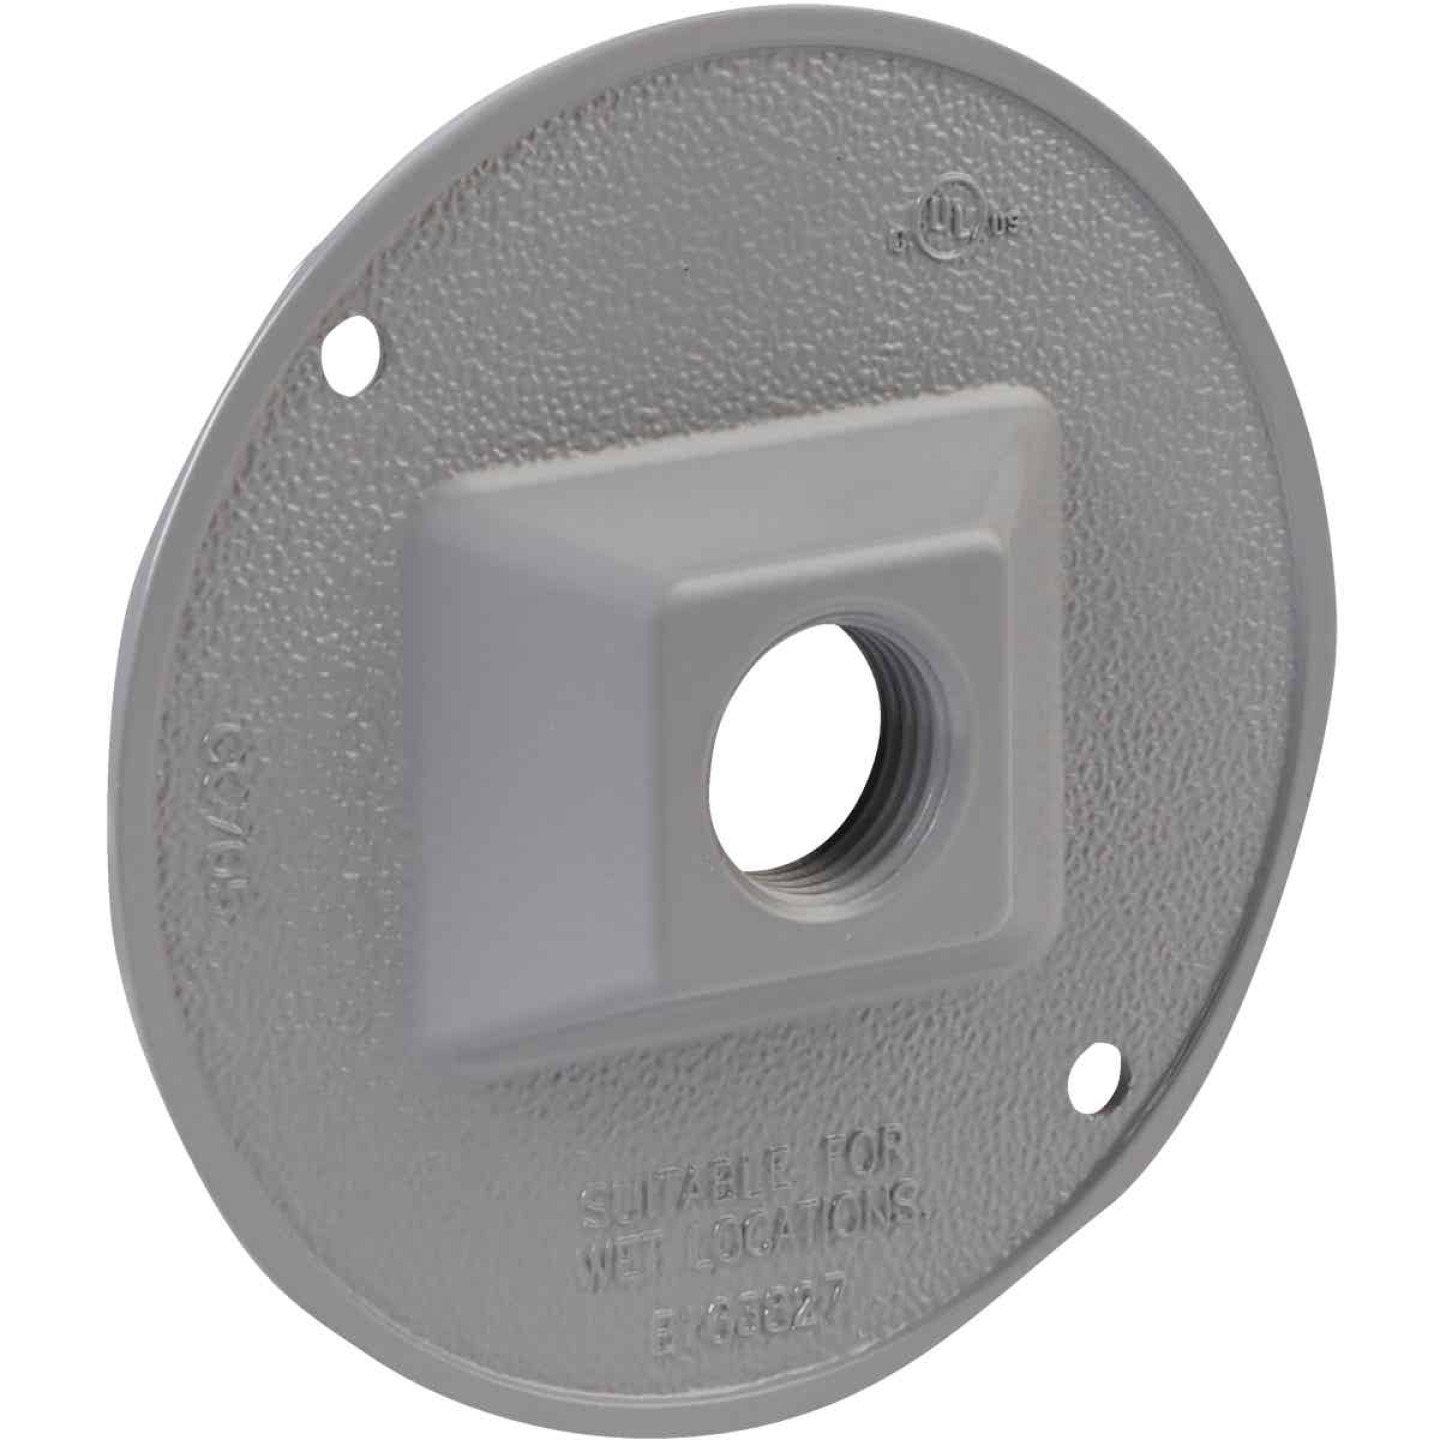 Bell 1-Outlet Round Zinc Gray Cluster Weatherproof Outdoor Electrical Cover, Carded Image 3